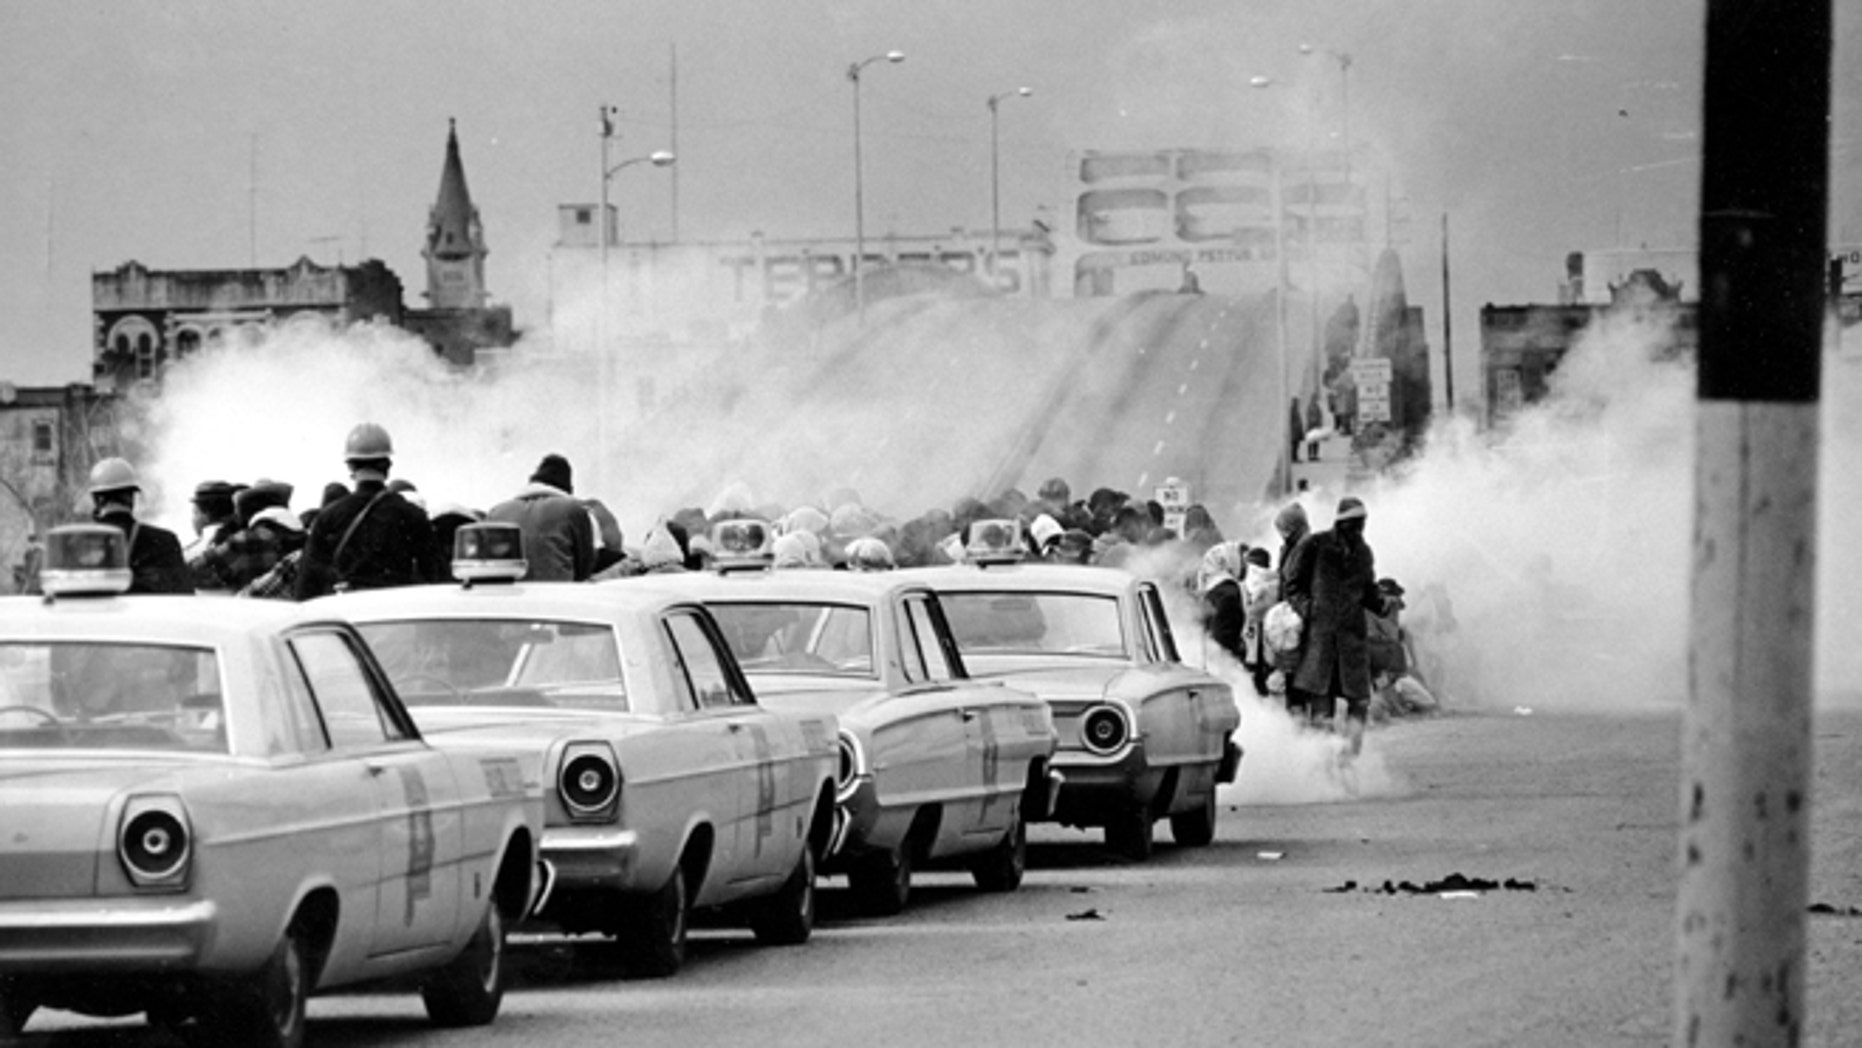 """FILE - March 7, 1965: Clouds of tear gas fill the air as state troopers, ordered by Gov. George Wallace, break up a demonstration march in Selma, Ala., on what became known as """"Bloody Sunday."""" The incident is widely credited for galvanizing the nation's leaders and ultimately yielded passage of the Voting Rights Act of 1965."""